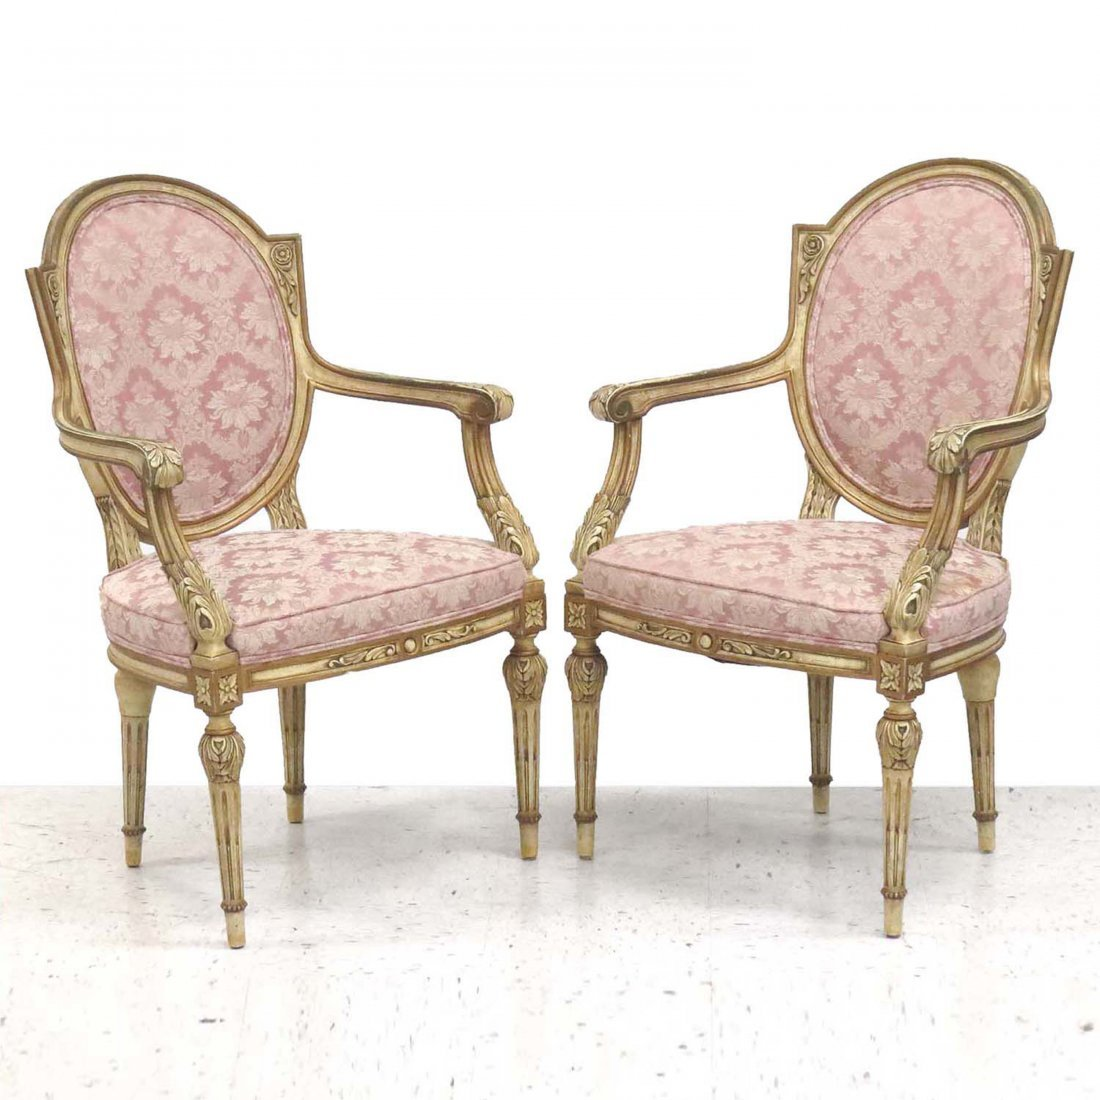 PAIR FRENCH, PAINTED AND PARCLE GILT FAUTEUILS